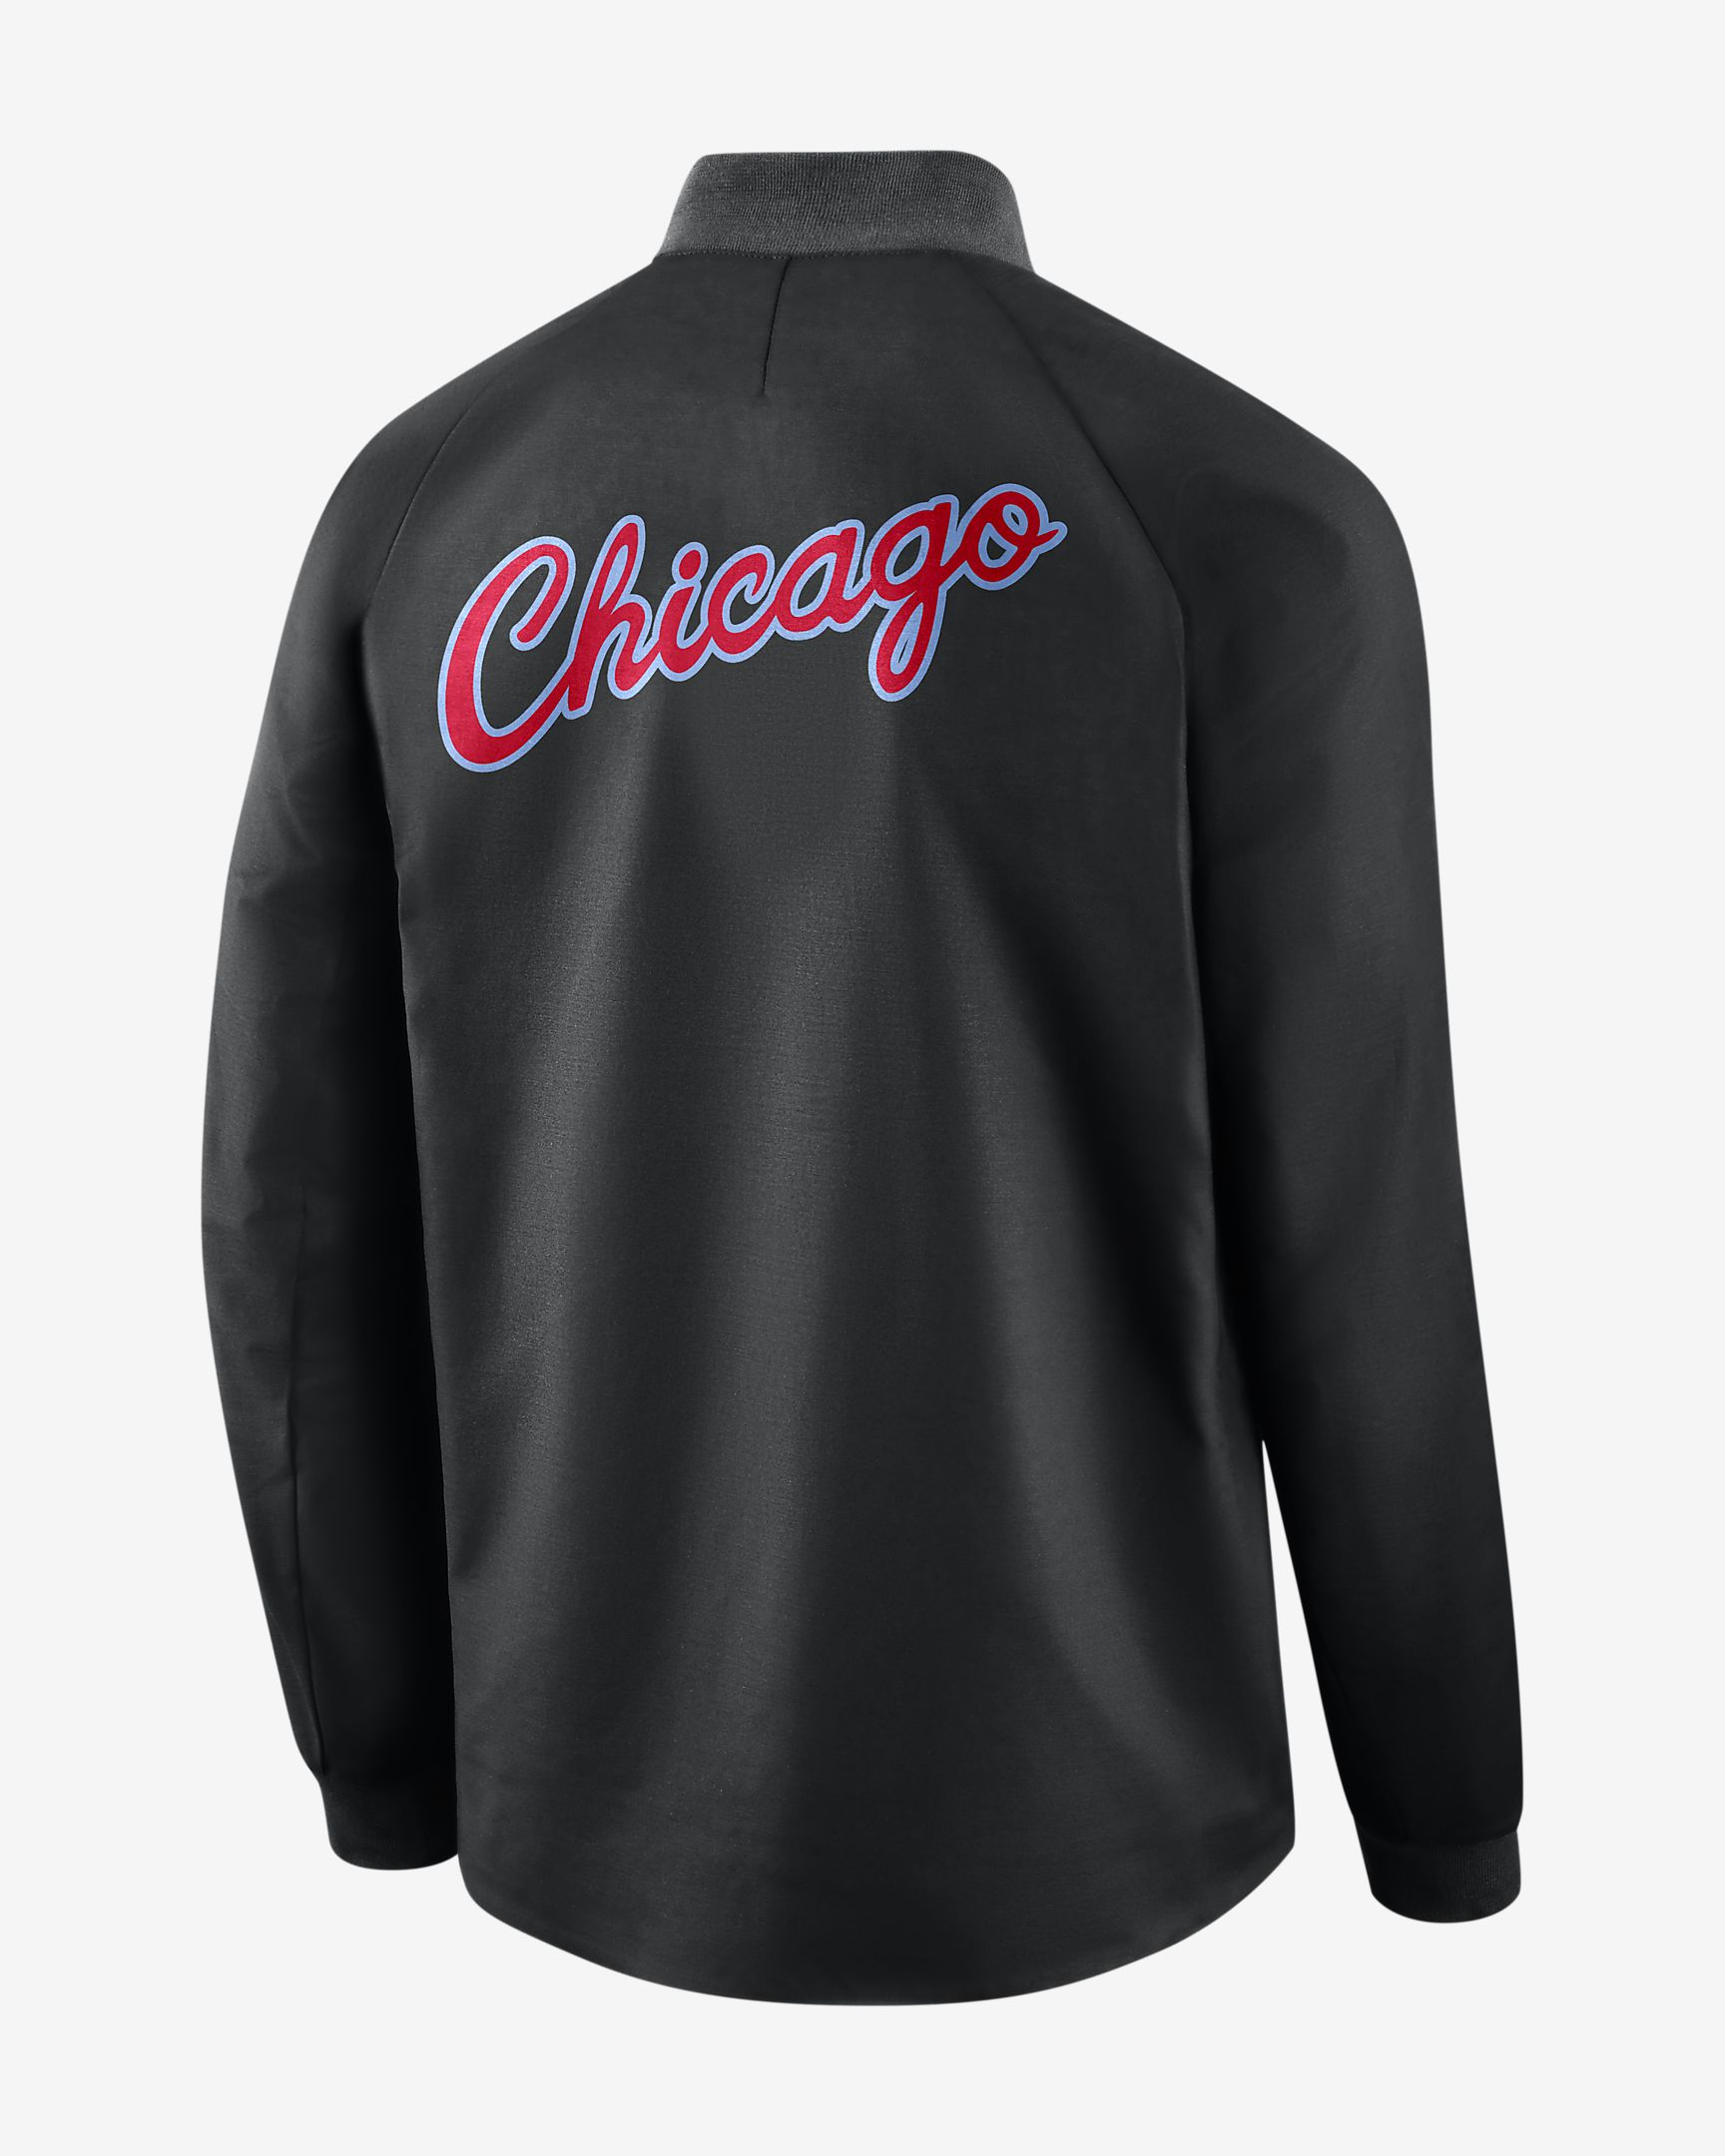 reputable site e1cb7 c076e Nike NBA Chicago Bulls City Edition Modern Varsity Jacket ...